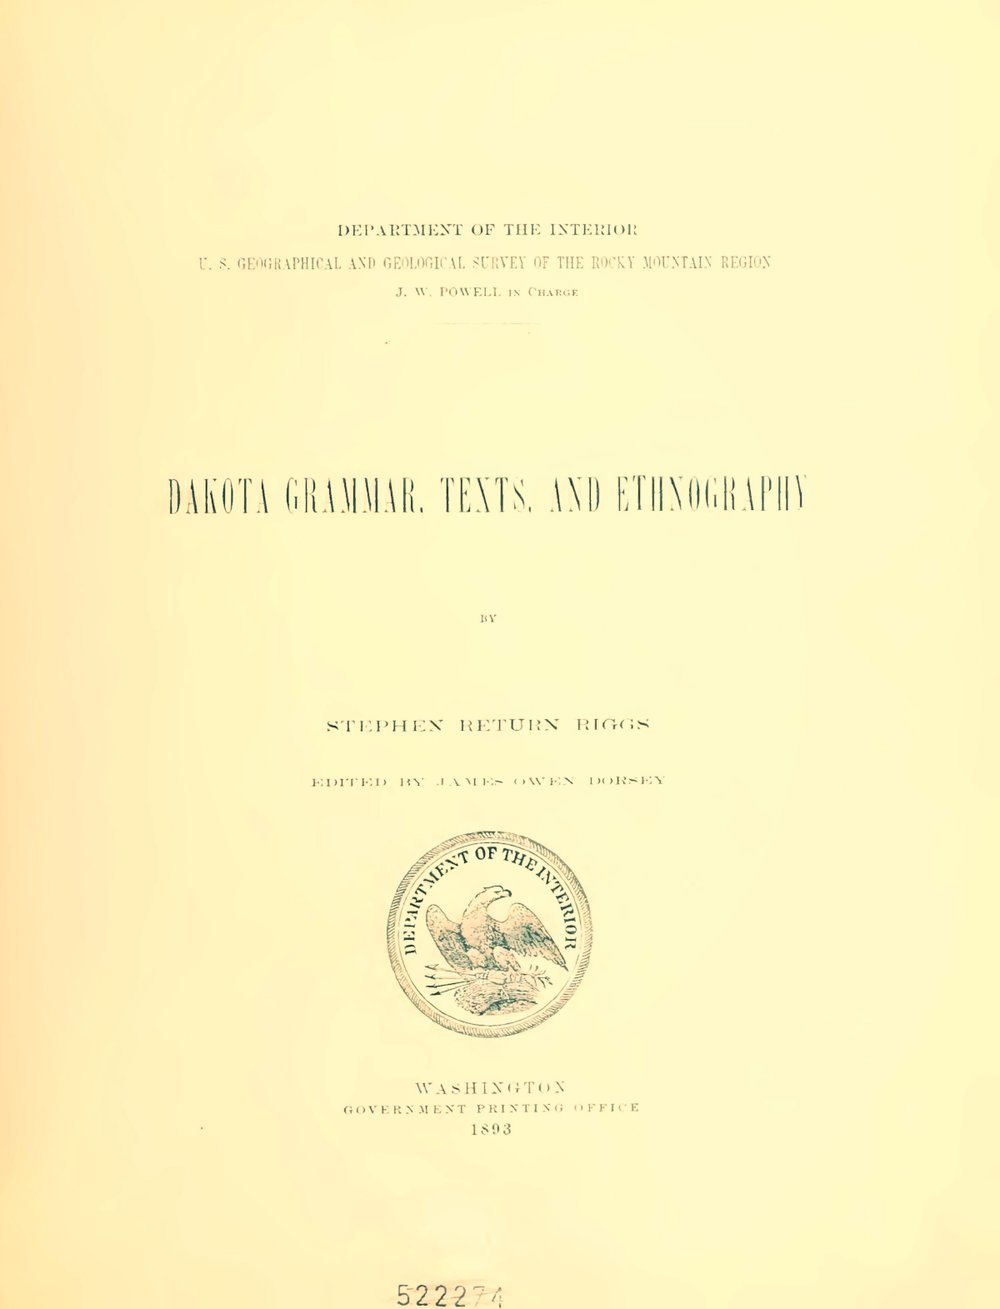 Riggs, Stephen Return, Dakota Grammar, Texts, and Ethnography Title Page.jpg